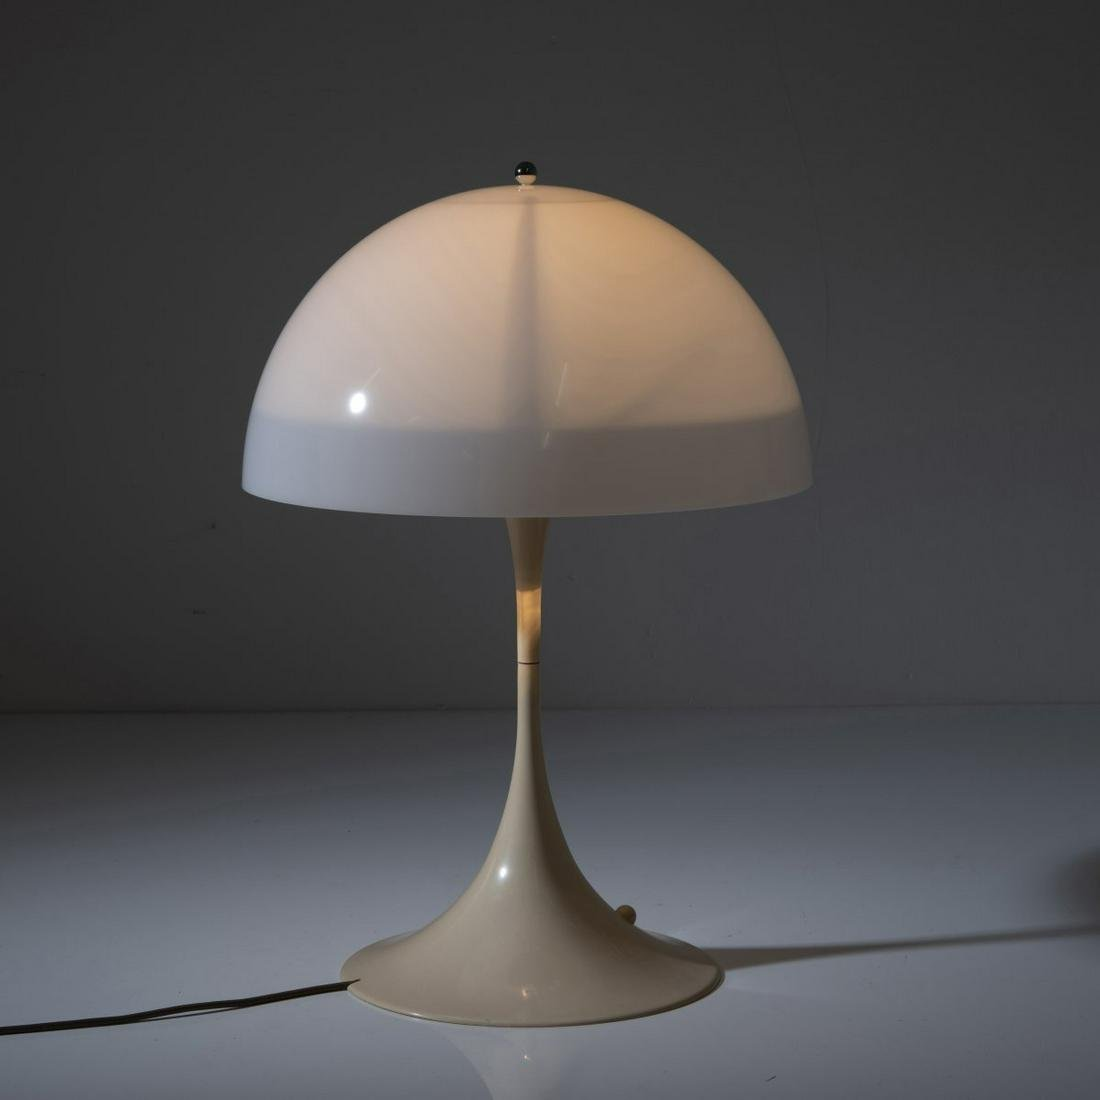 Verner Panton, Table light 'Panthella', 1971